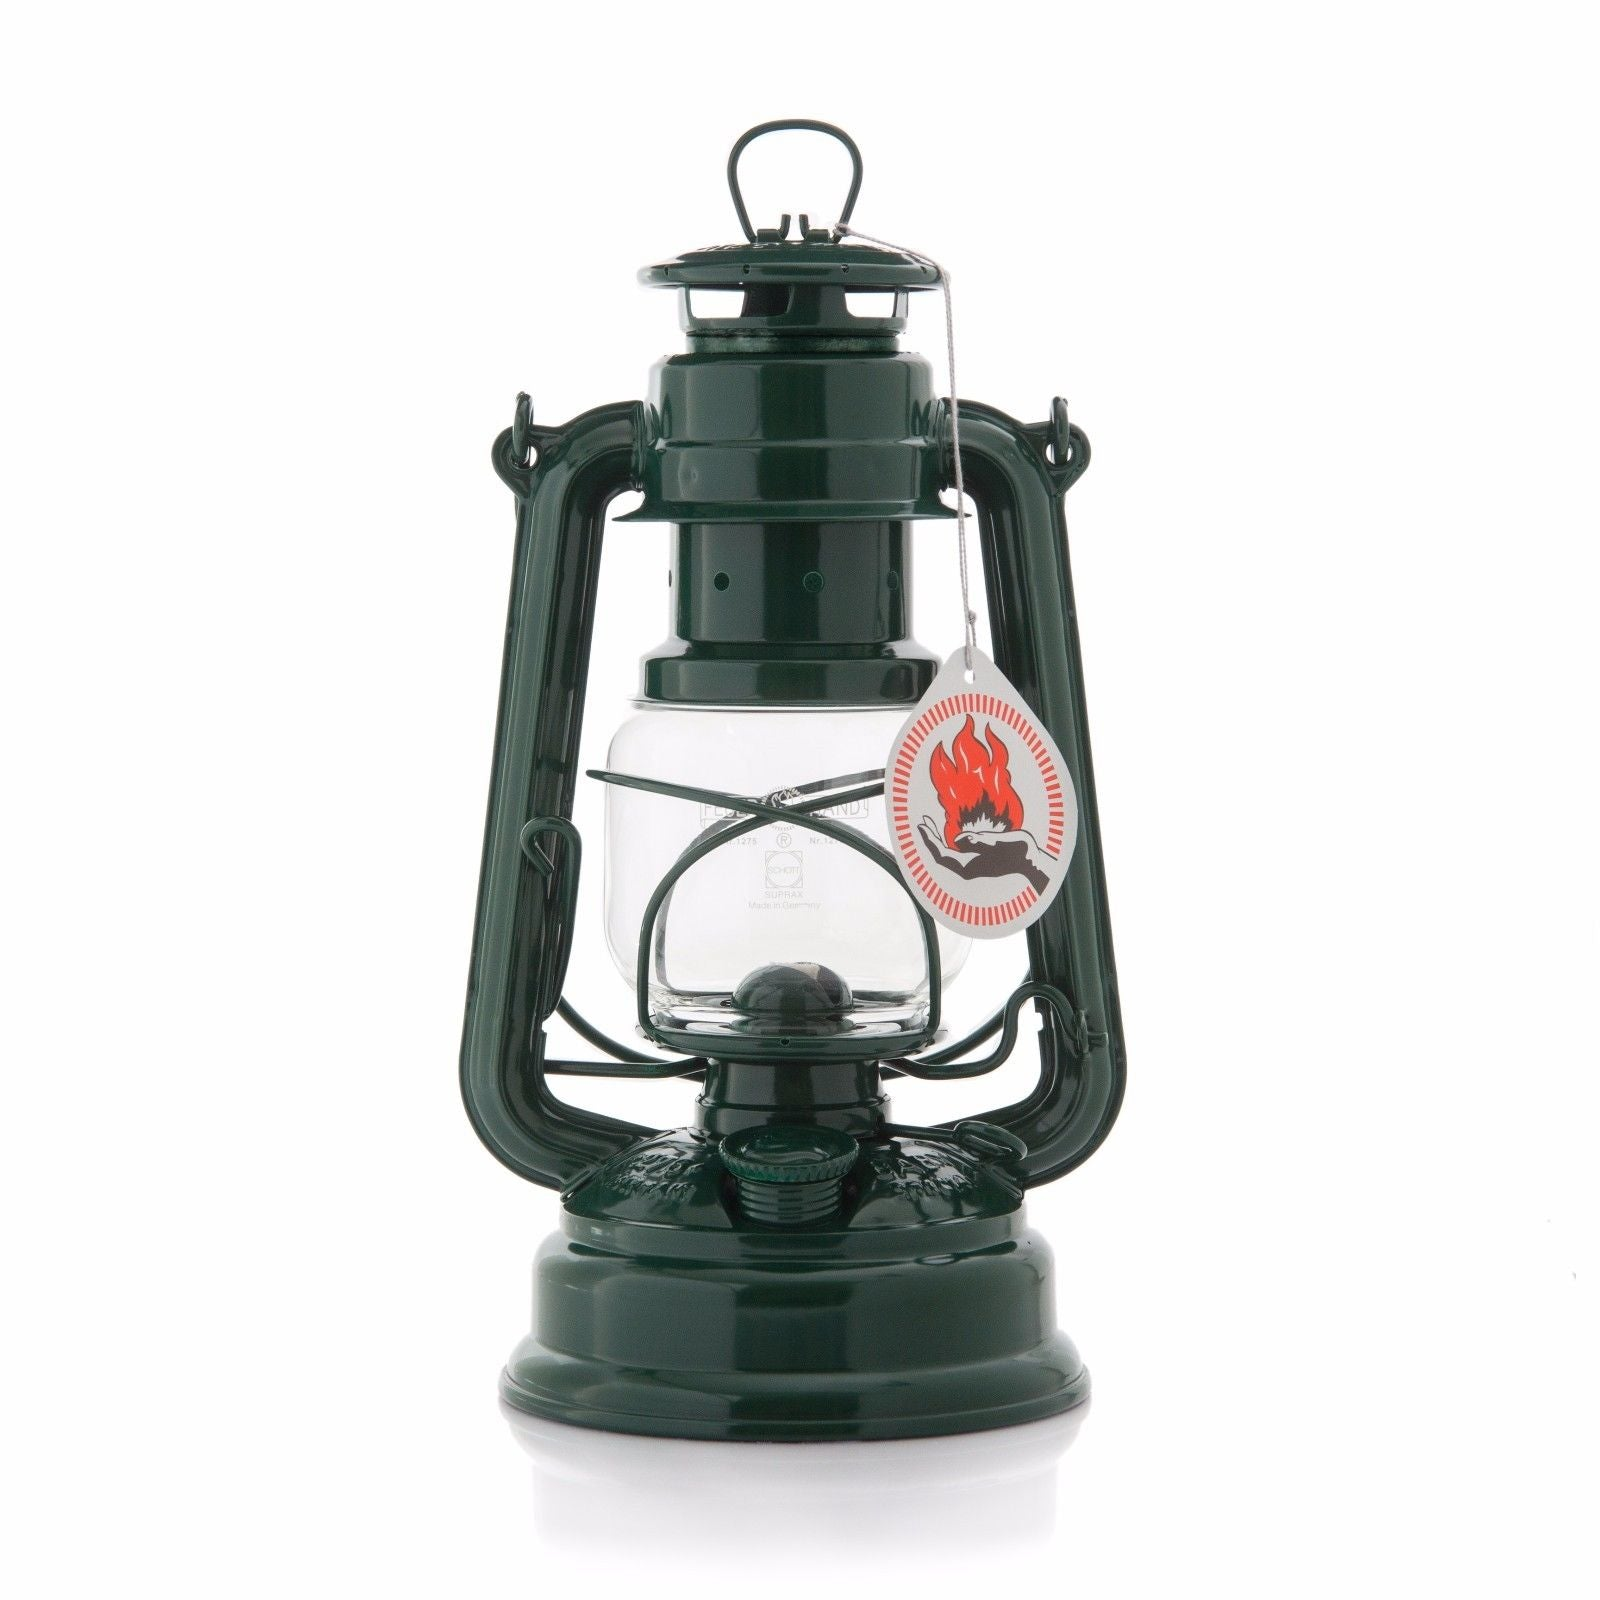 ORIGINAL FEUERHAND HURRICANE KEROSENE OIL CAMPING OUTDOOR LANTERN LAMP - MOSS GREEN